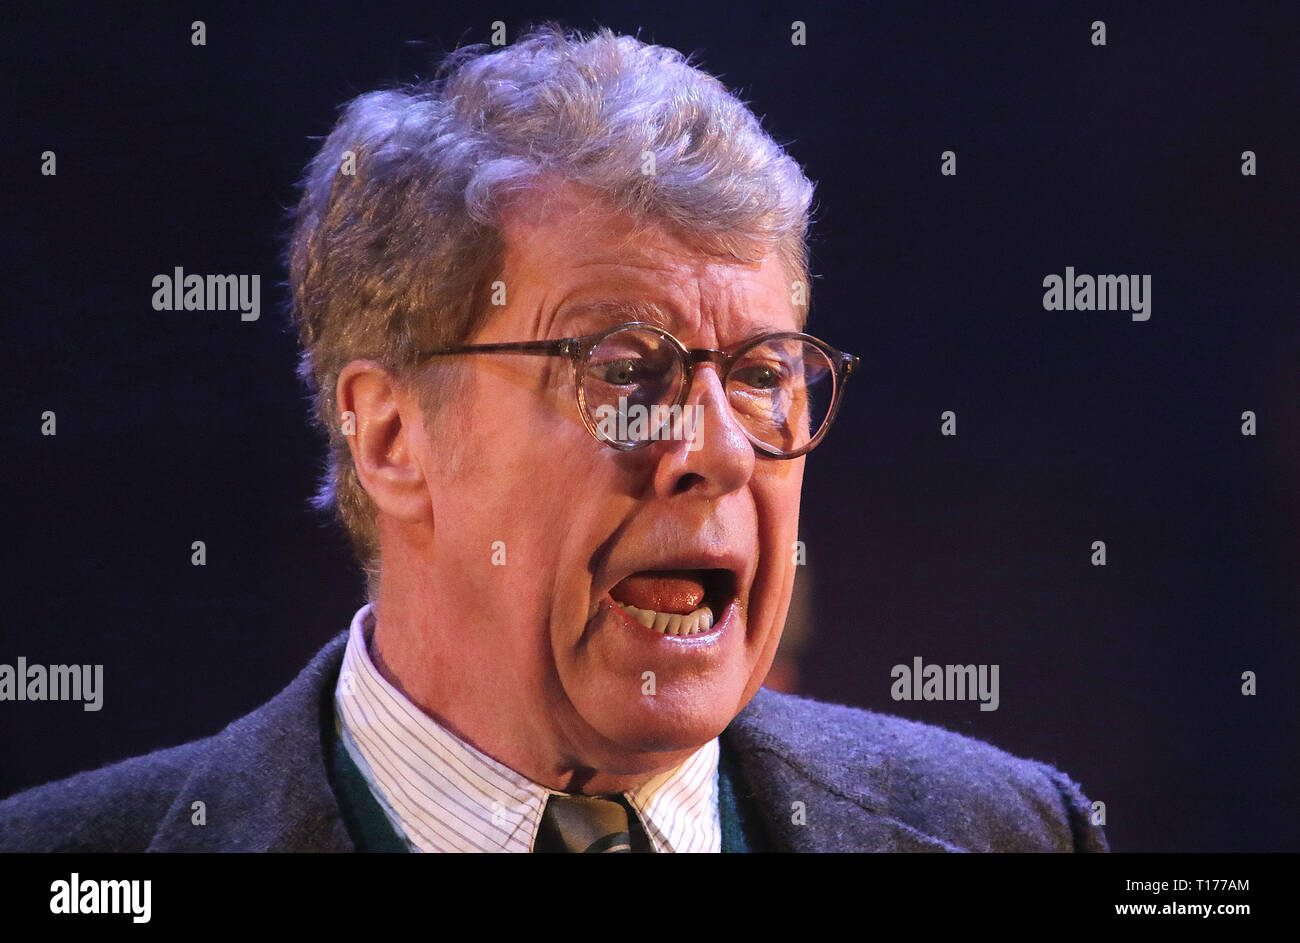 Jun 06, 2016 - London, England, UK - The Go Between Photo Call, Apollo Theatre, Shaftesbury Avenue Michael Crawford leads the cast of the new West End - Stock Image